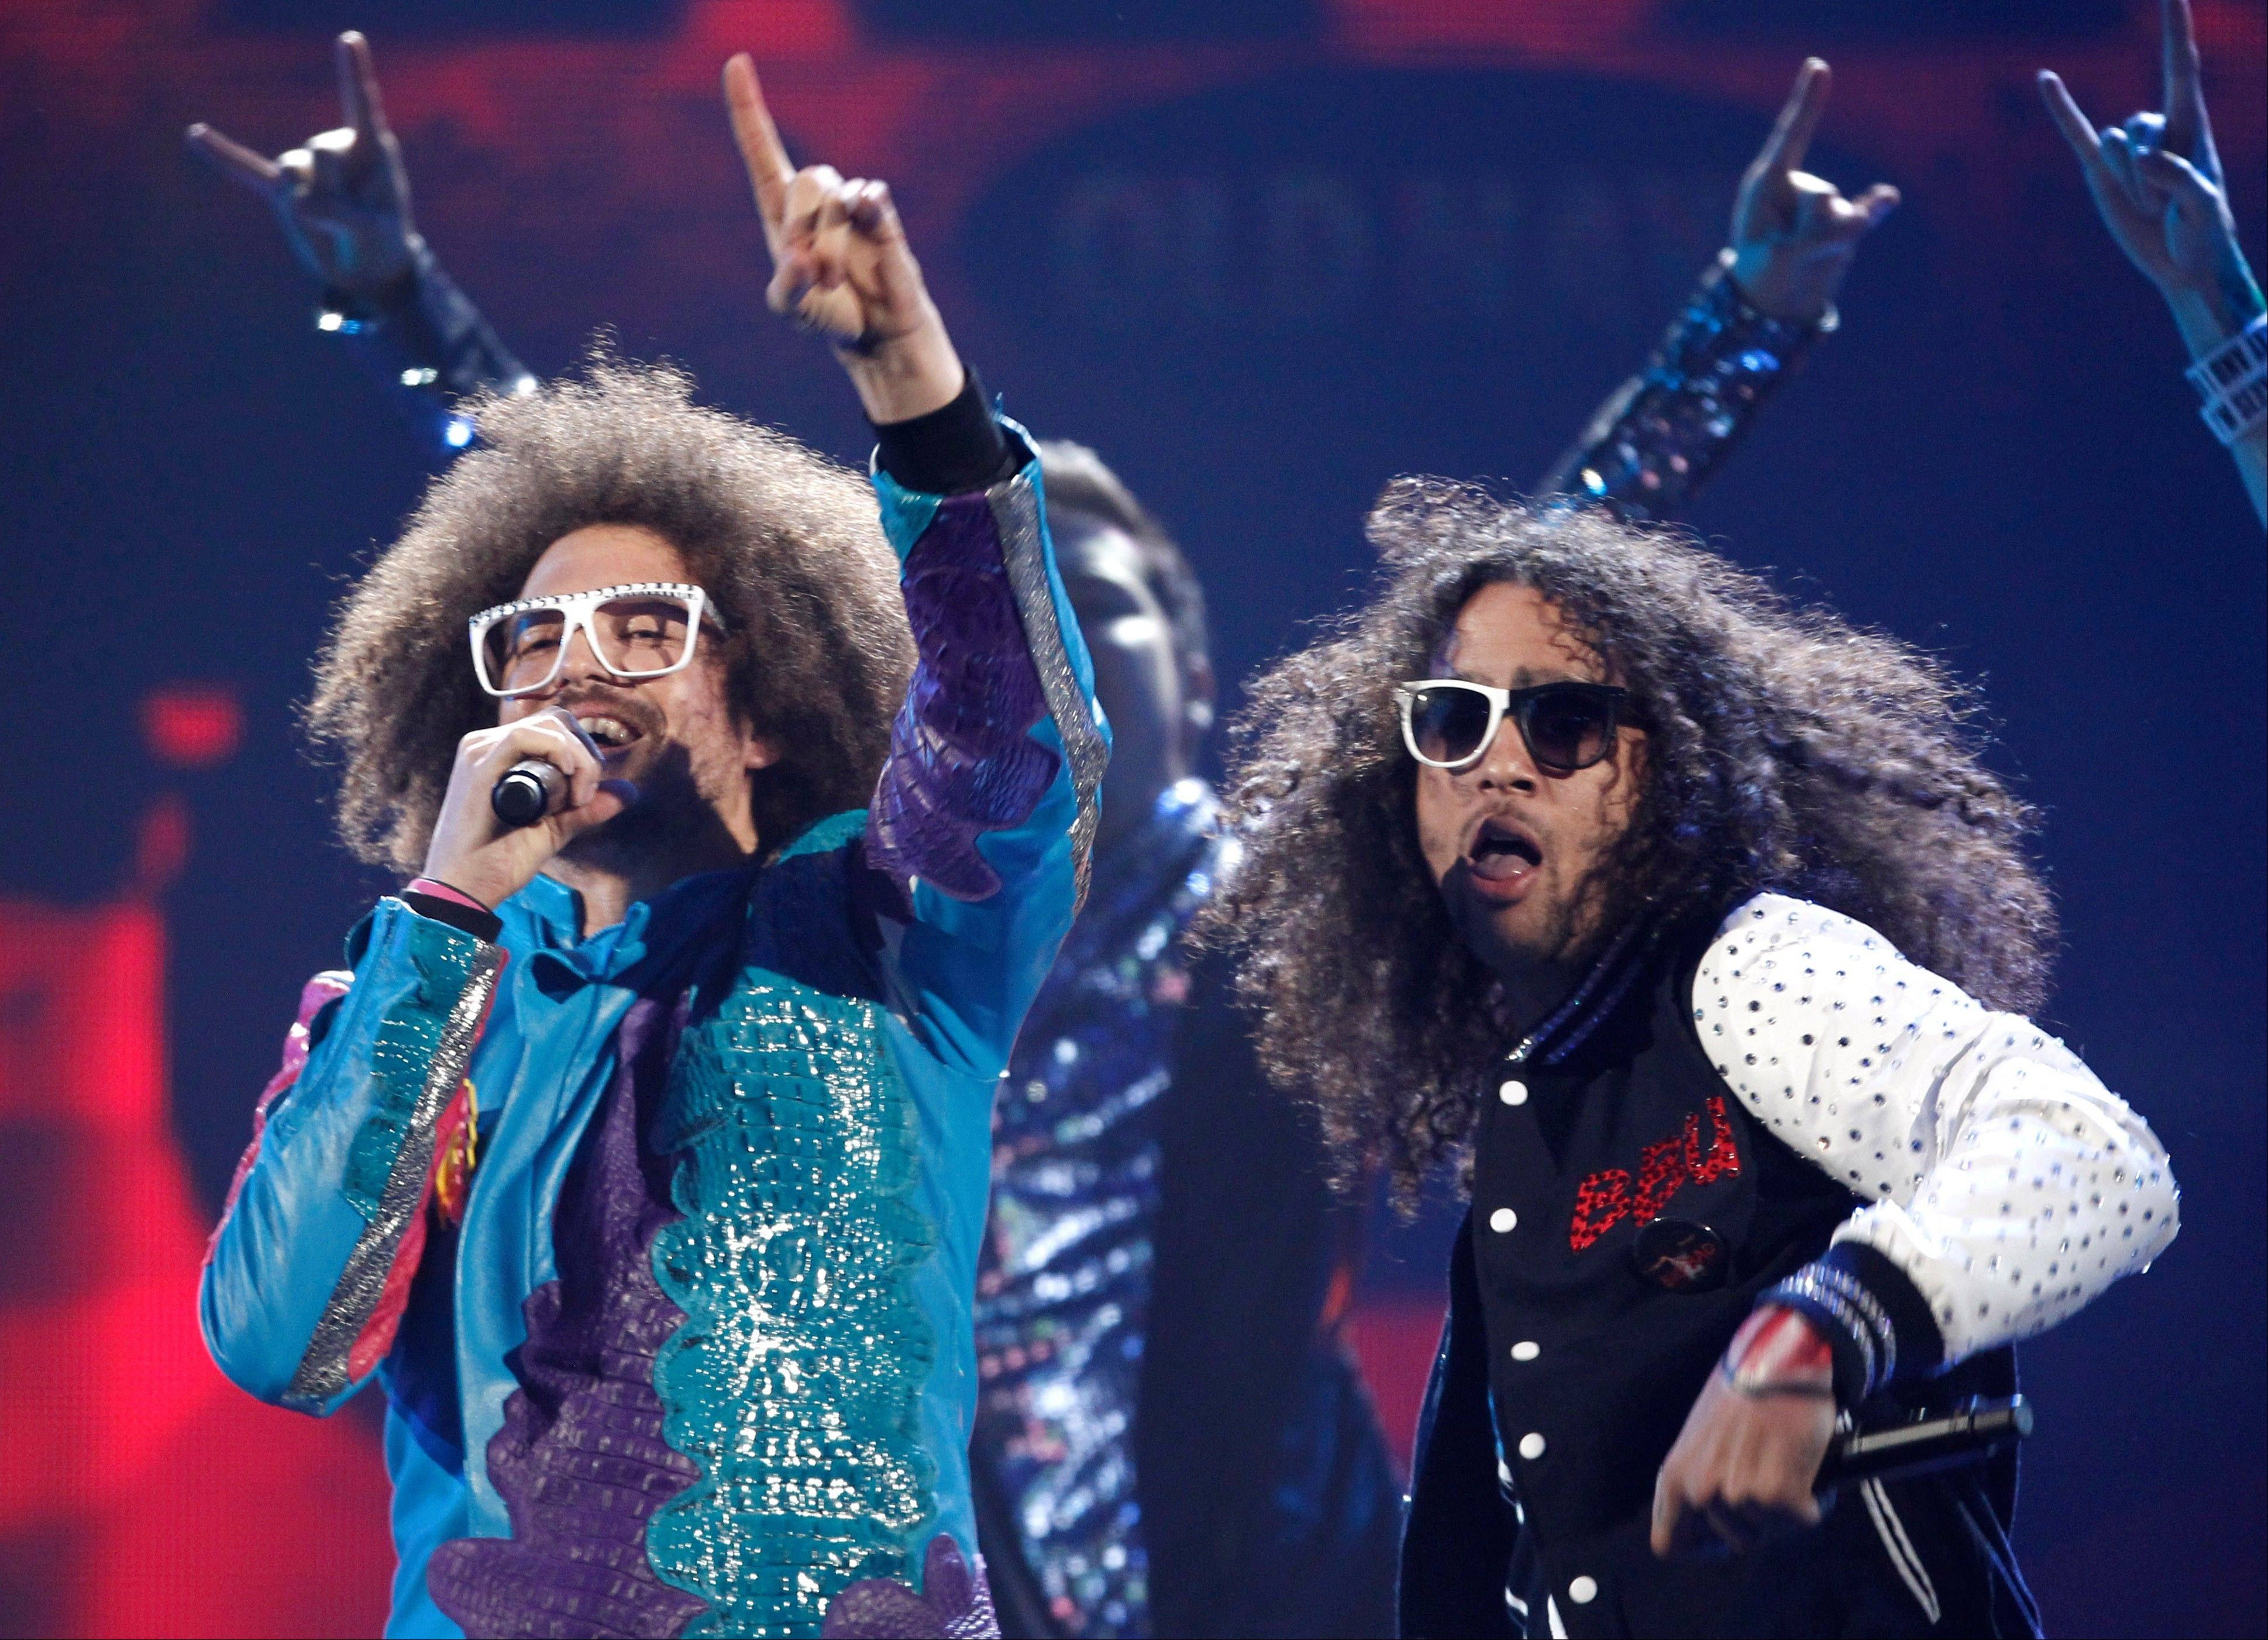 Redfoo, left, and SkyBlu from the music group LMFAO perform at the 39th Annual American Music Awards on Sunday, Nov. 20, 2011 in Los Angeles.